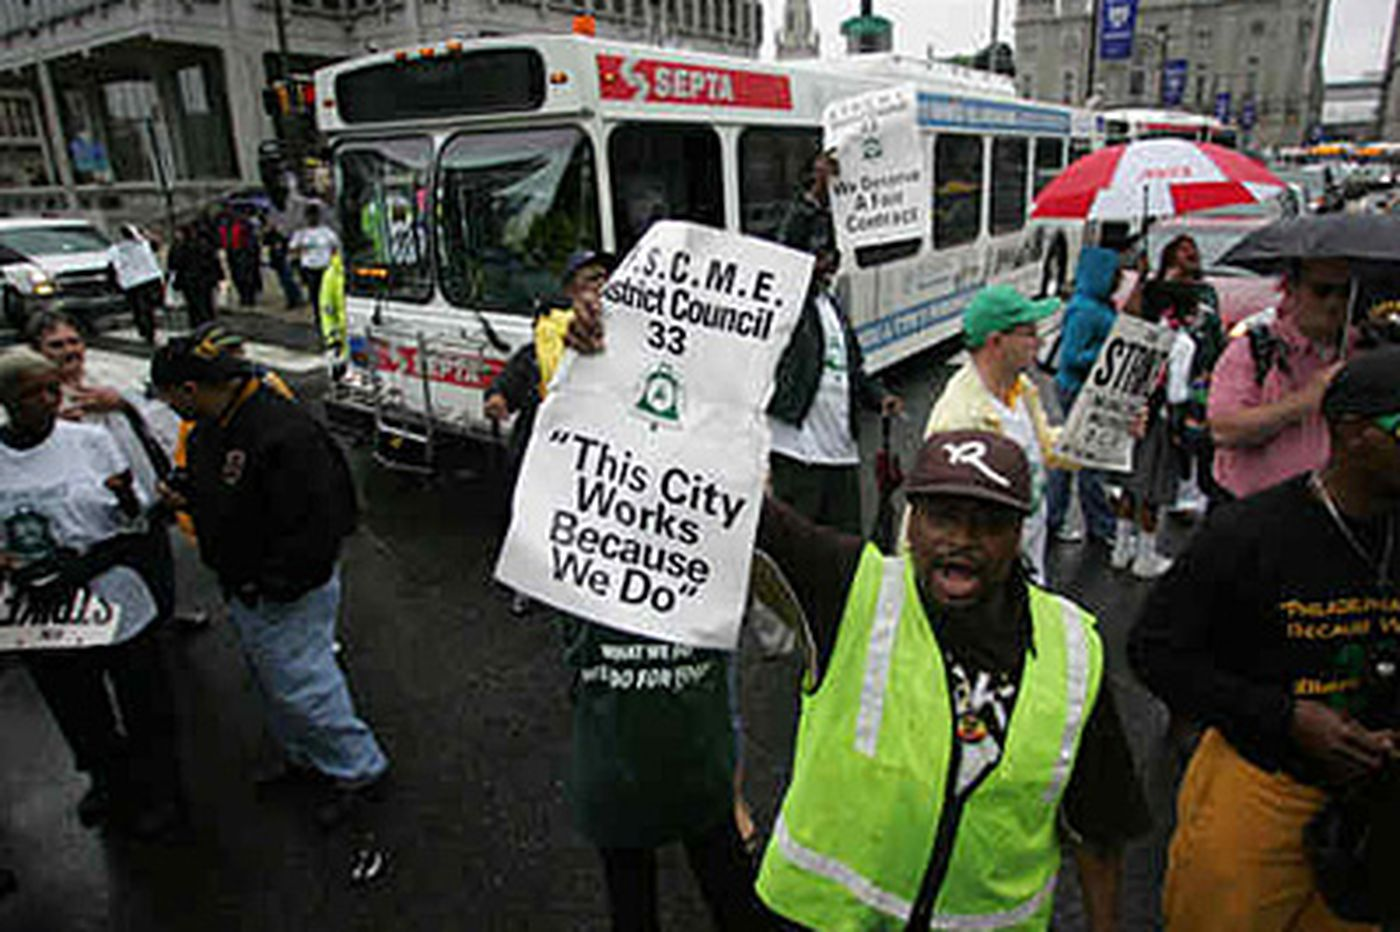 Municipal workers rally as contracts near expiration